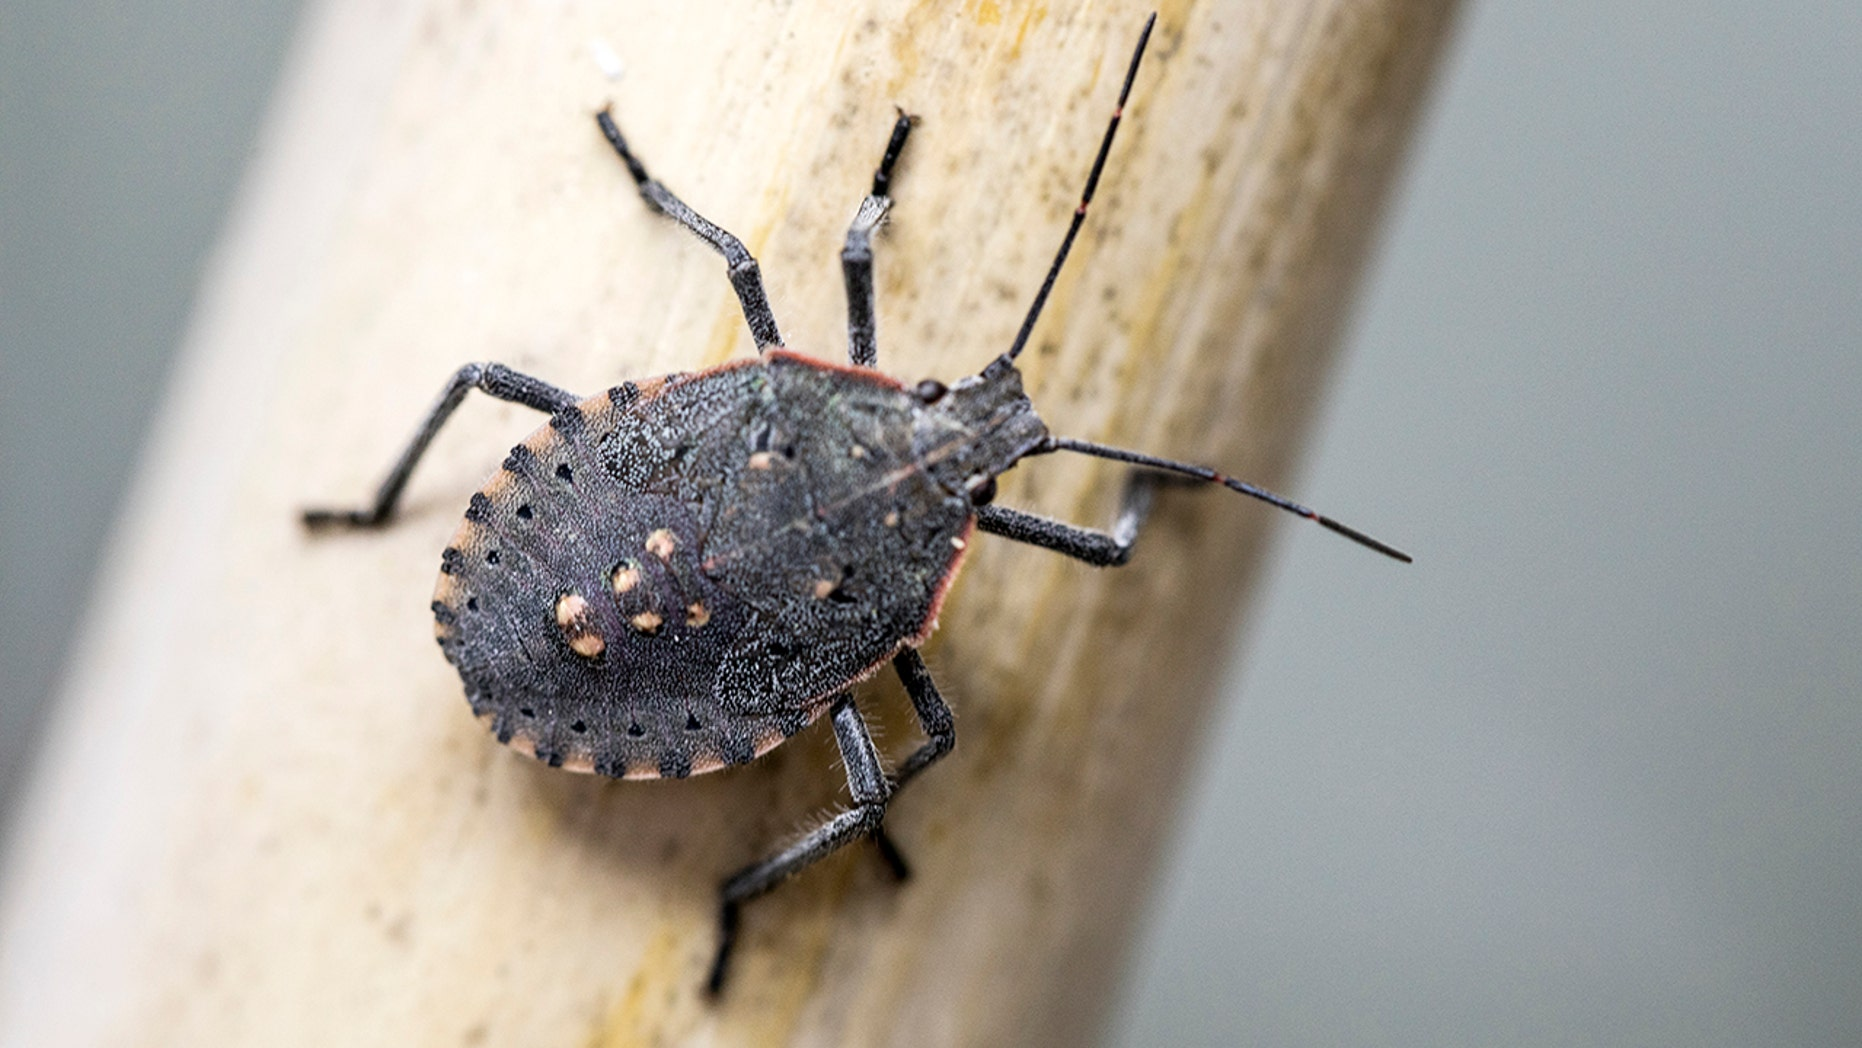 The brown marmorated stink bug releases a foul odor when threatened.